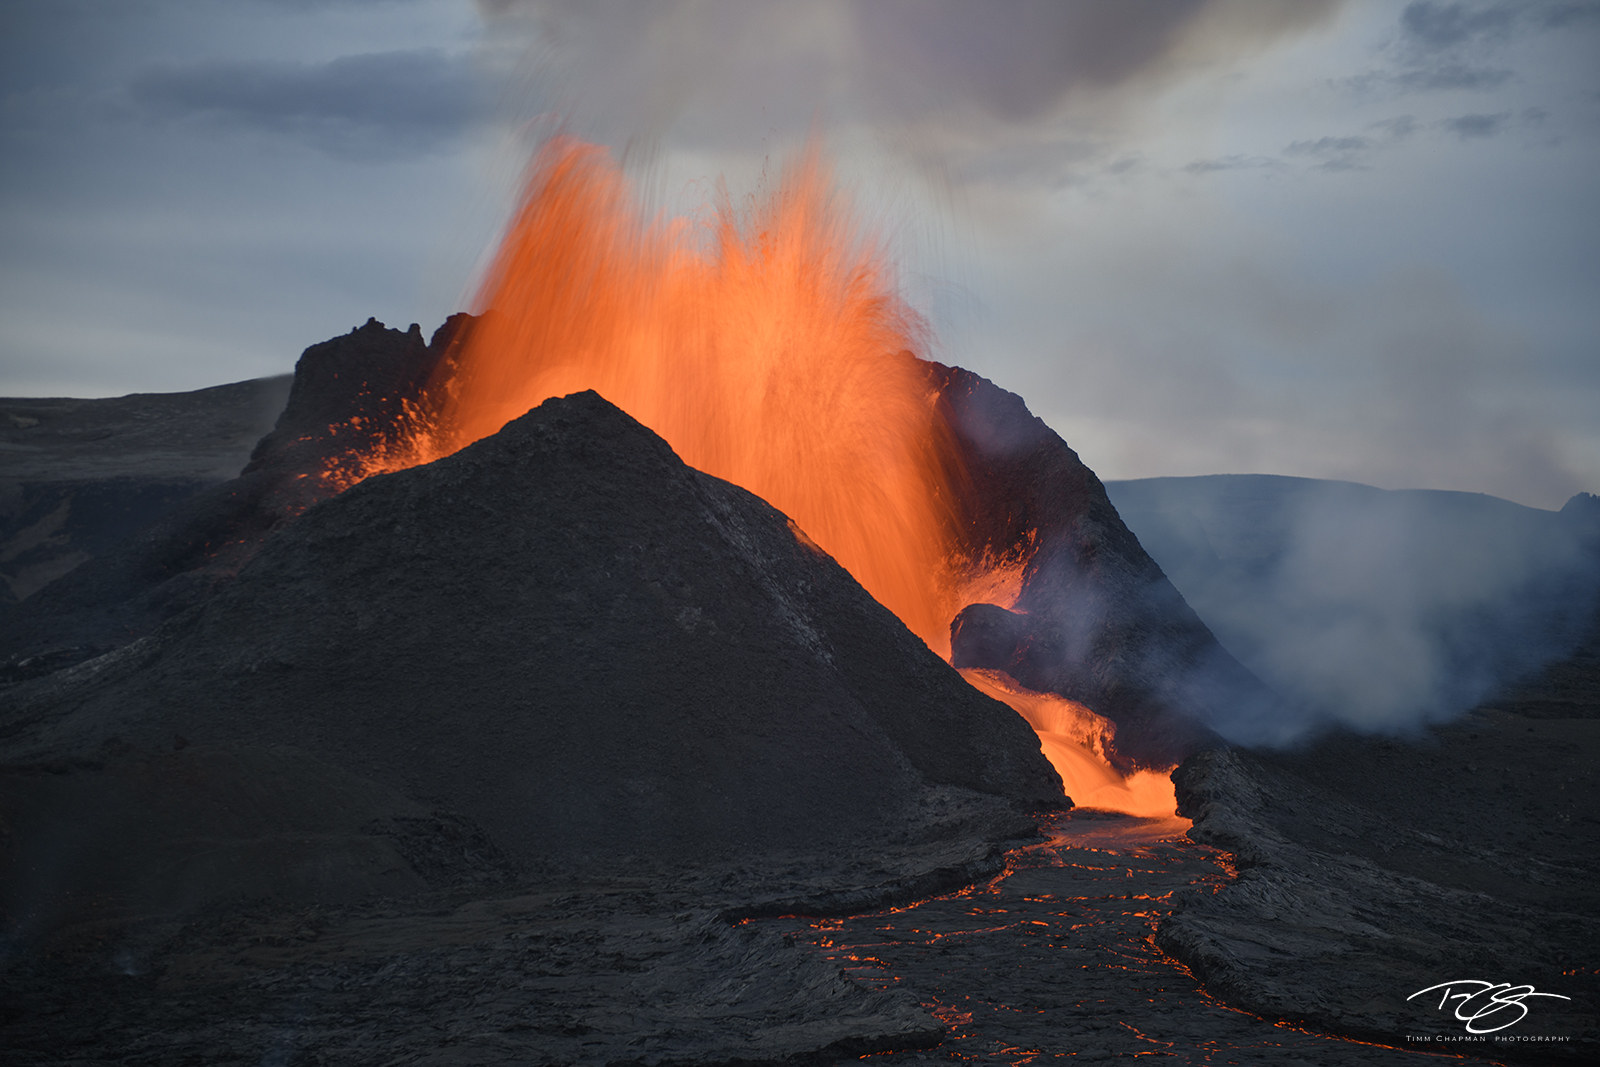 A volcano erupts in a slow motion symphony of molten lava